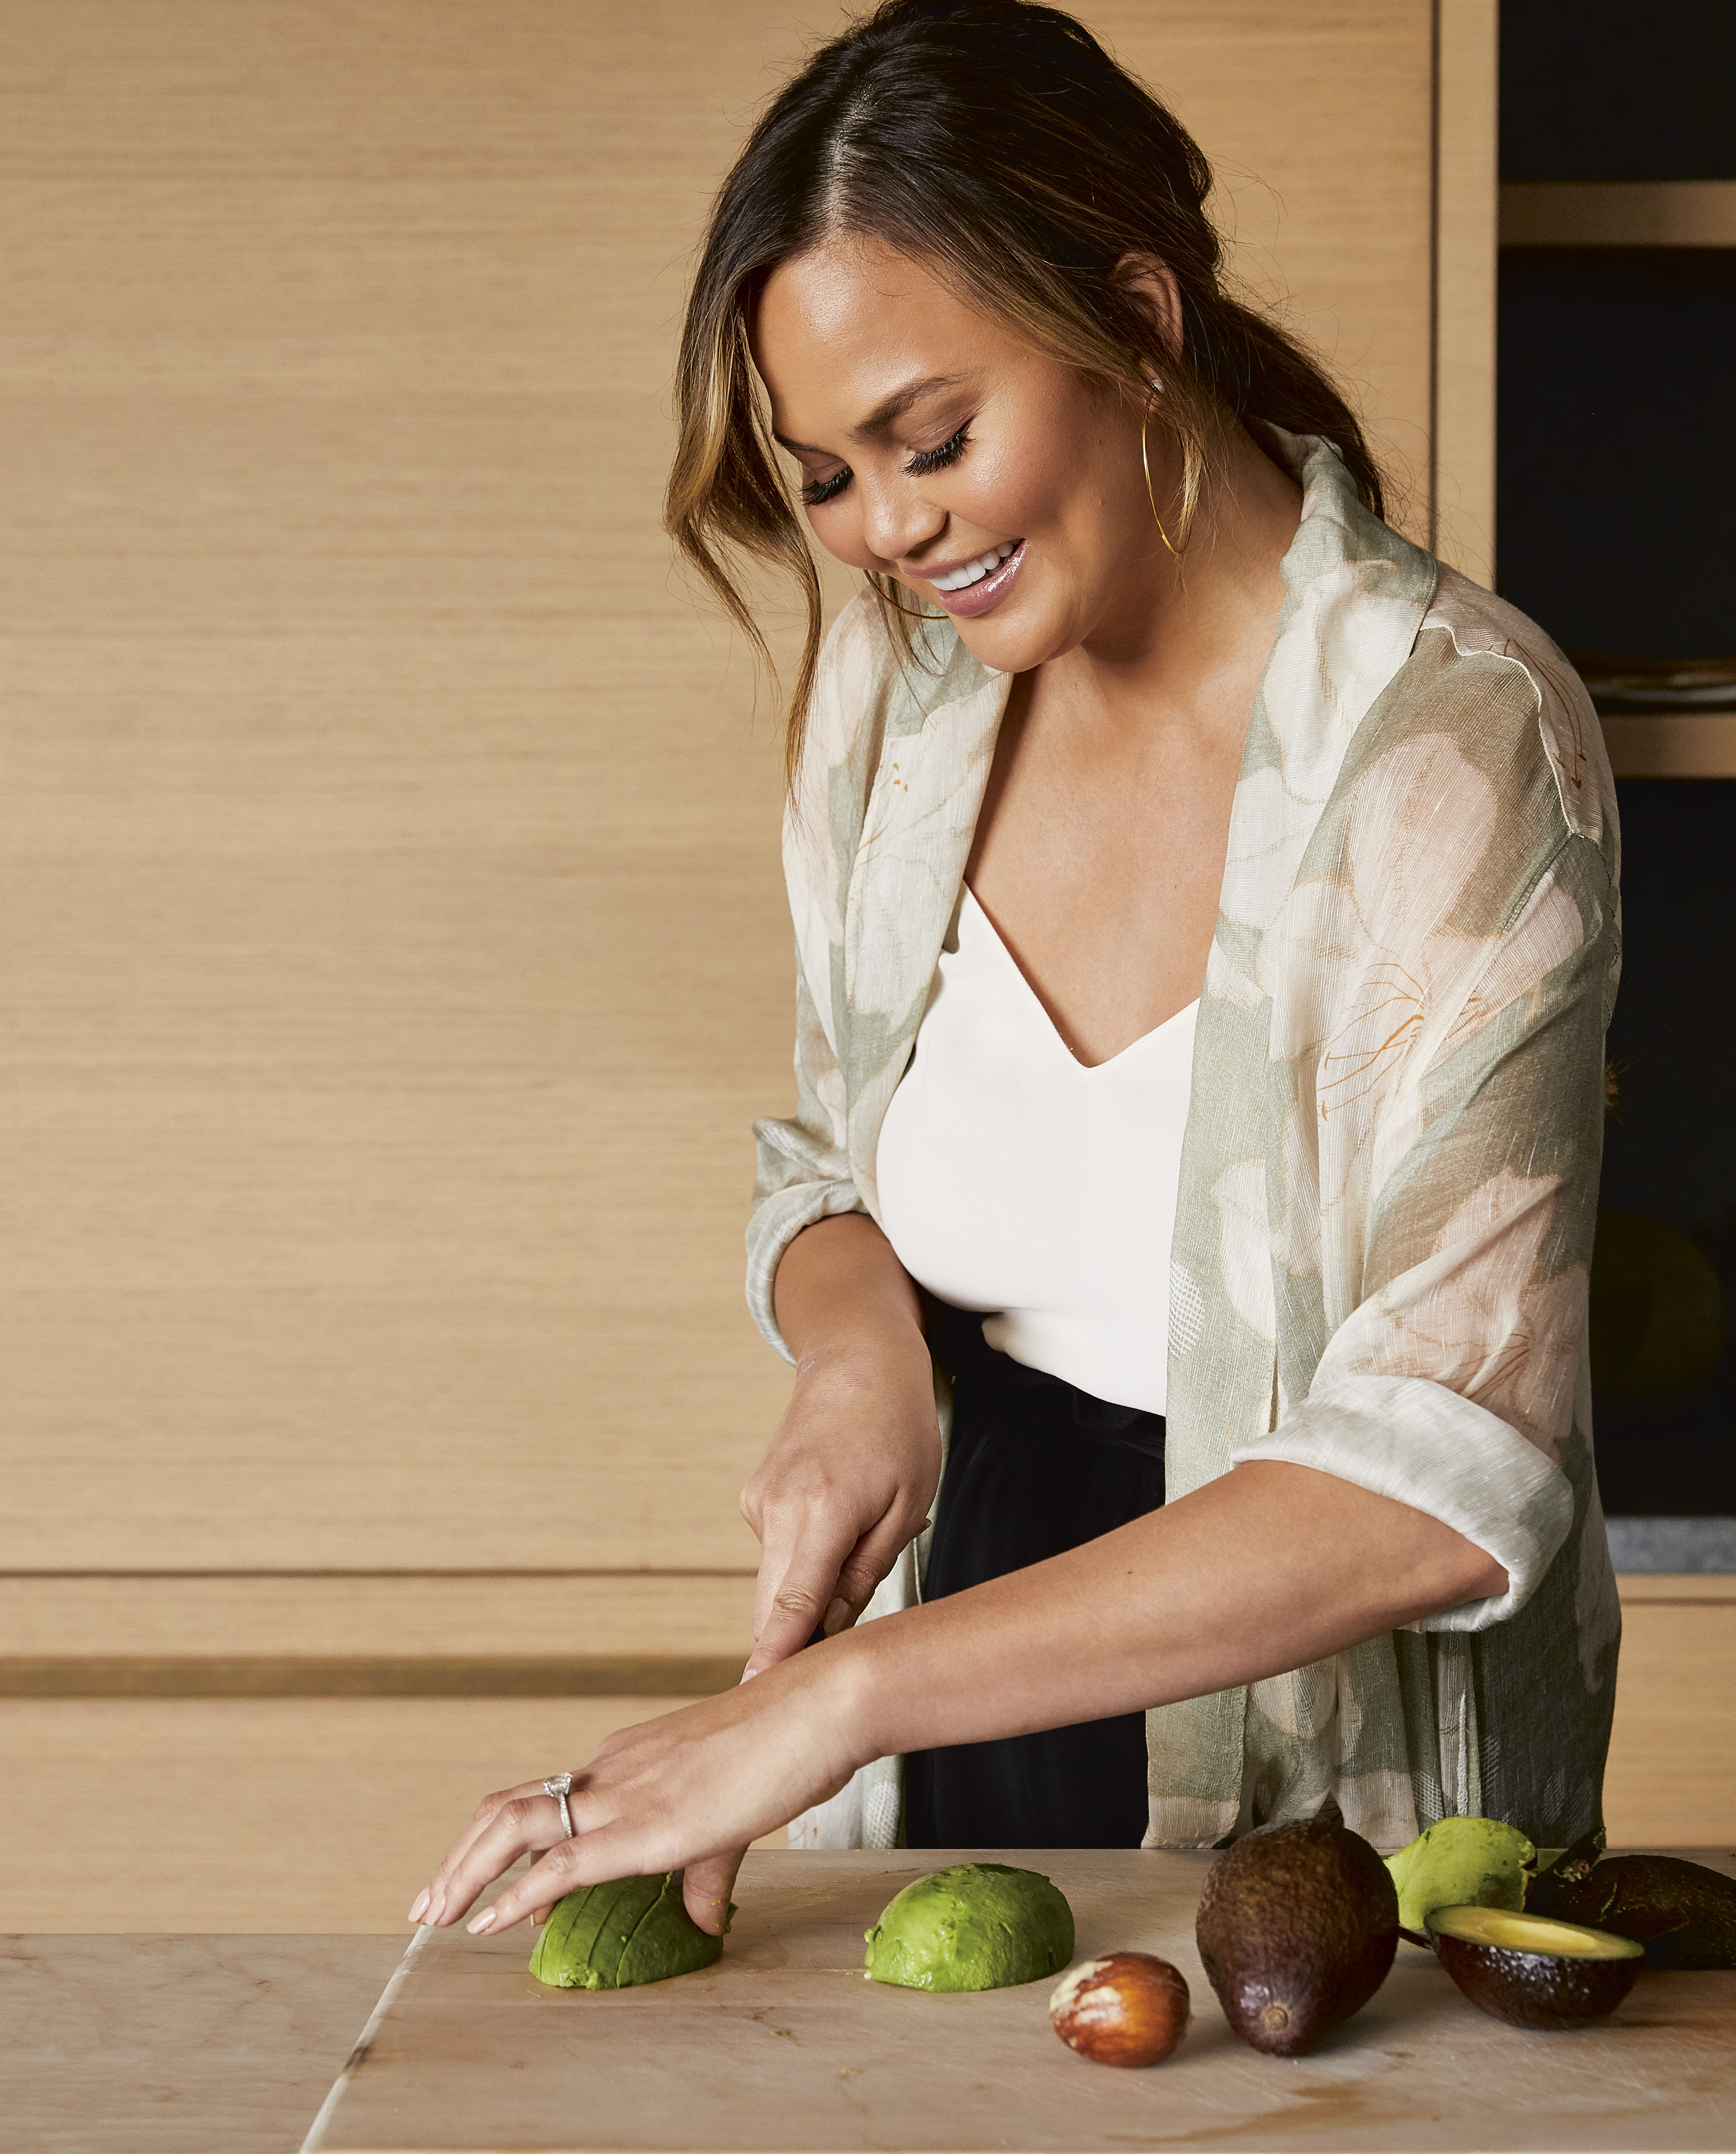 Chrissy_Teigen_054_Author_photo.jpg